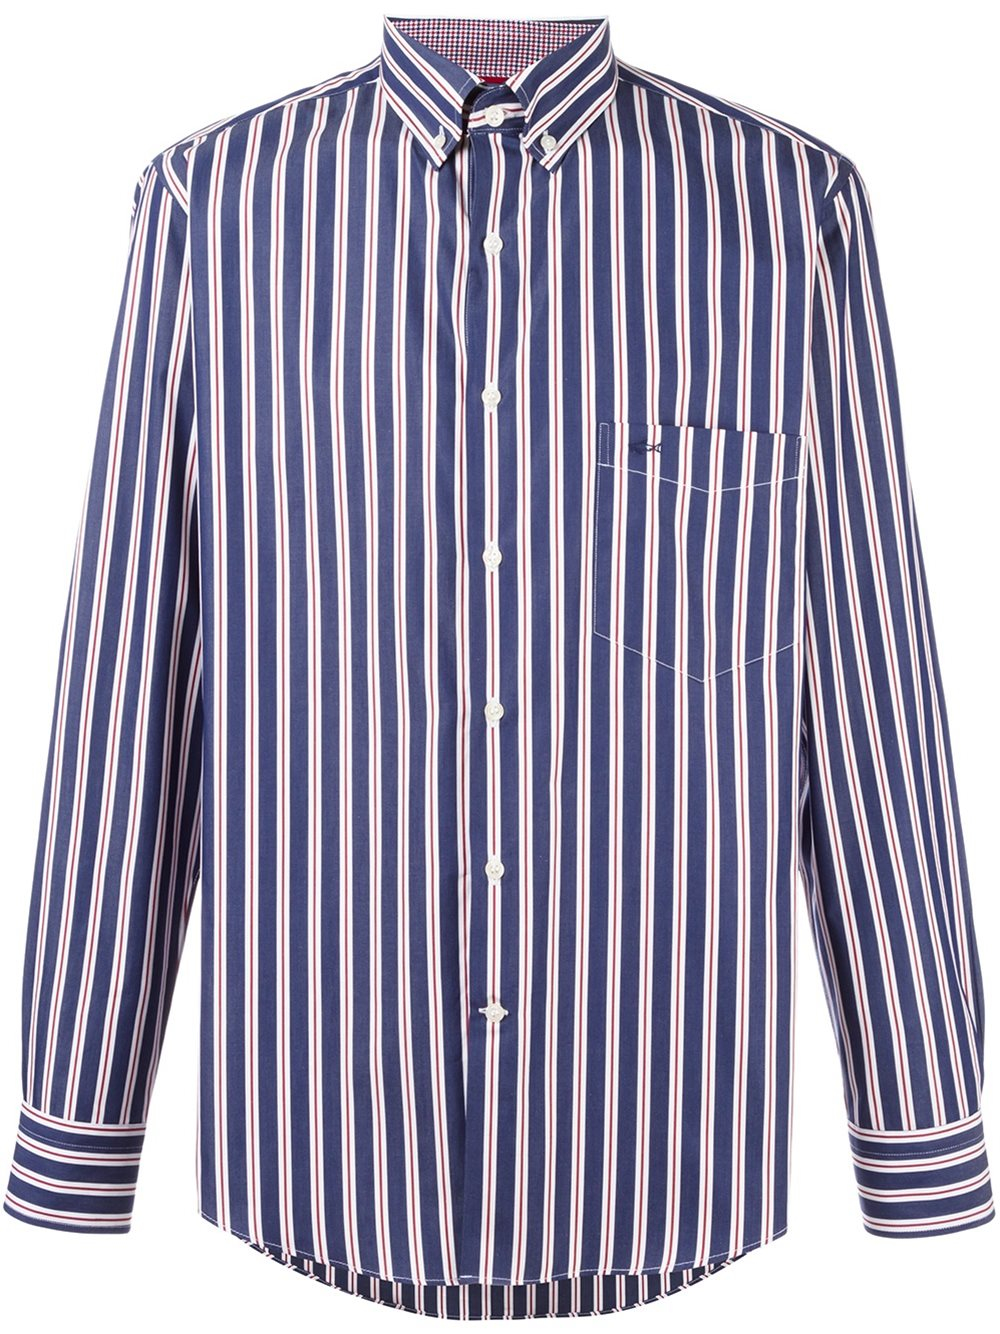 Paul shark striped button down shirt in blue for men lyst for Red and white striped button down shirt